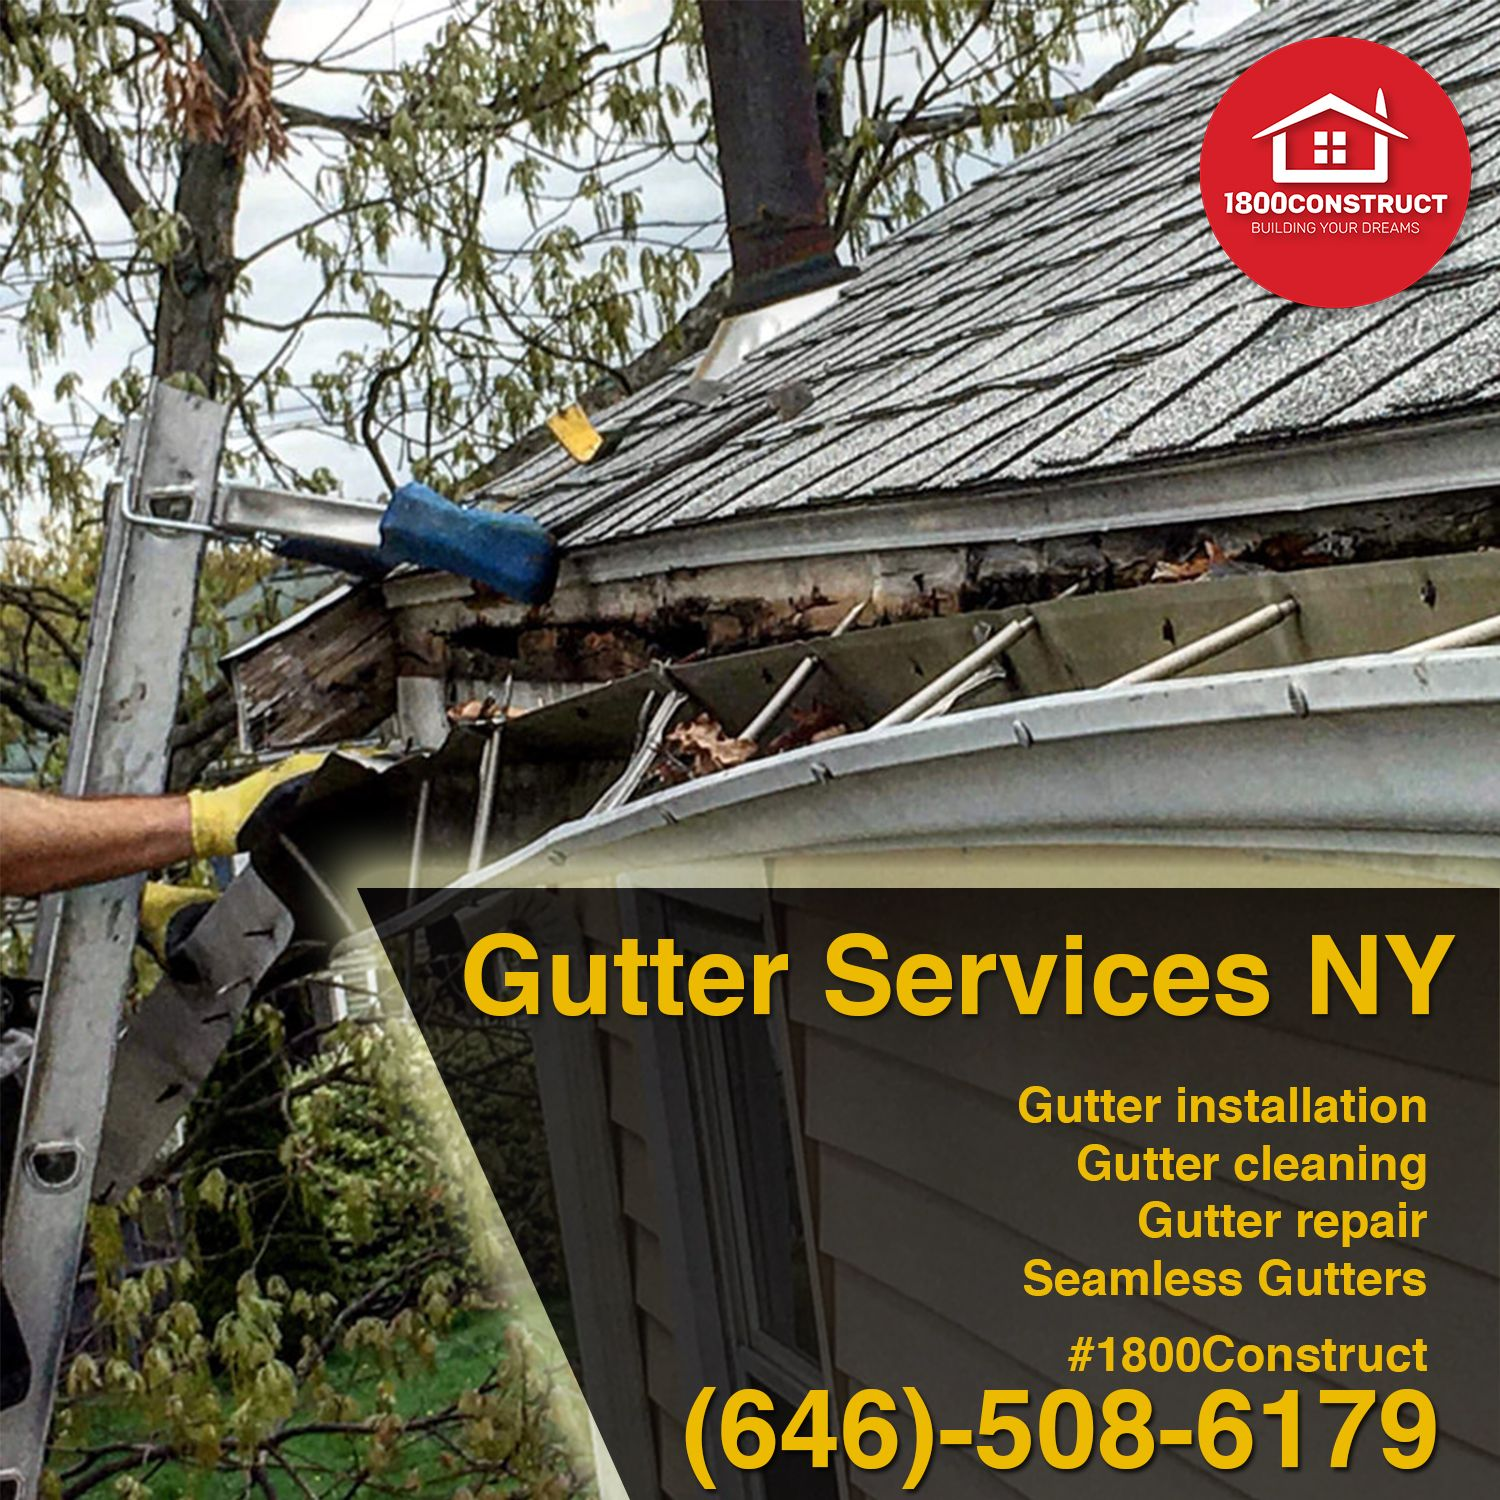 Affordable And Quick Gutter Services Ny In 2020 Gutter Services Gutter Repair How To Install Gutters